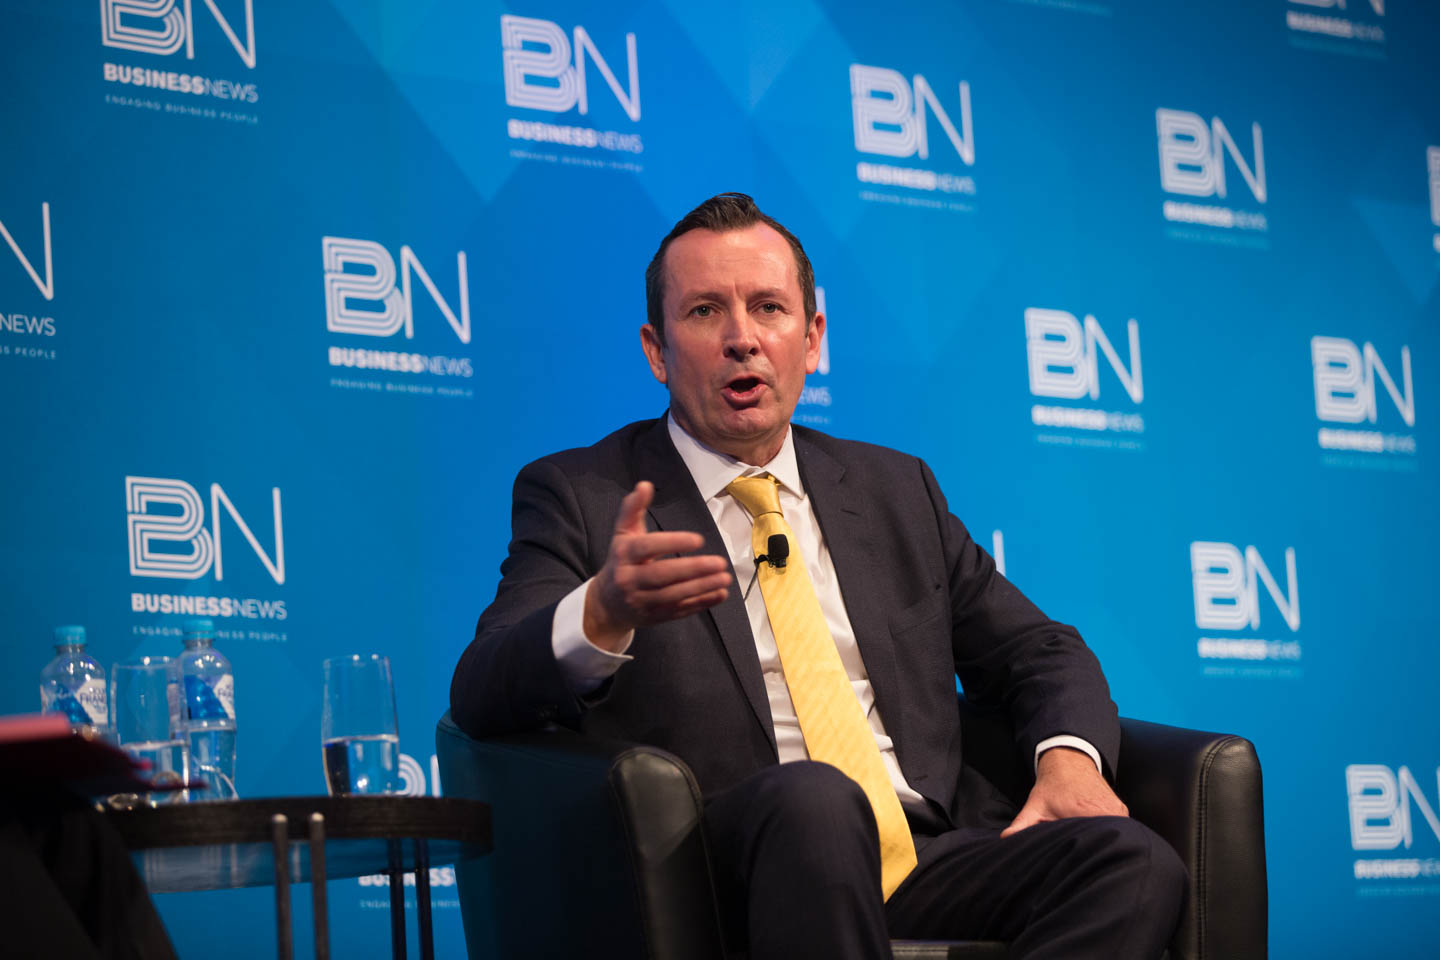 GTE governance in sights for McGowan